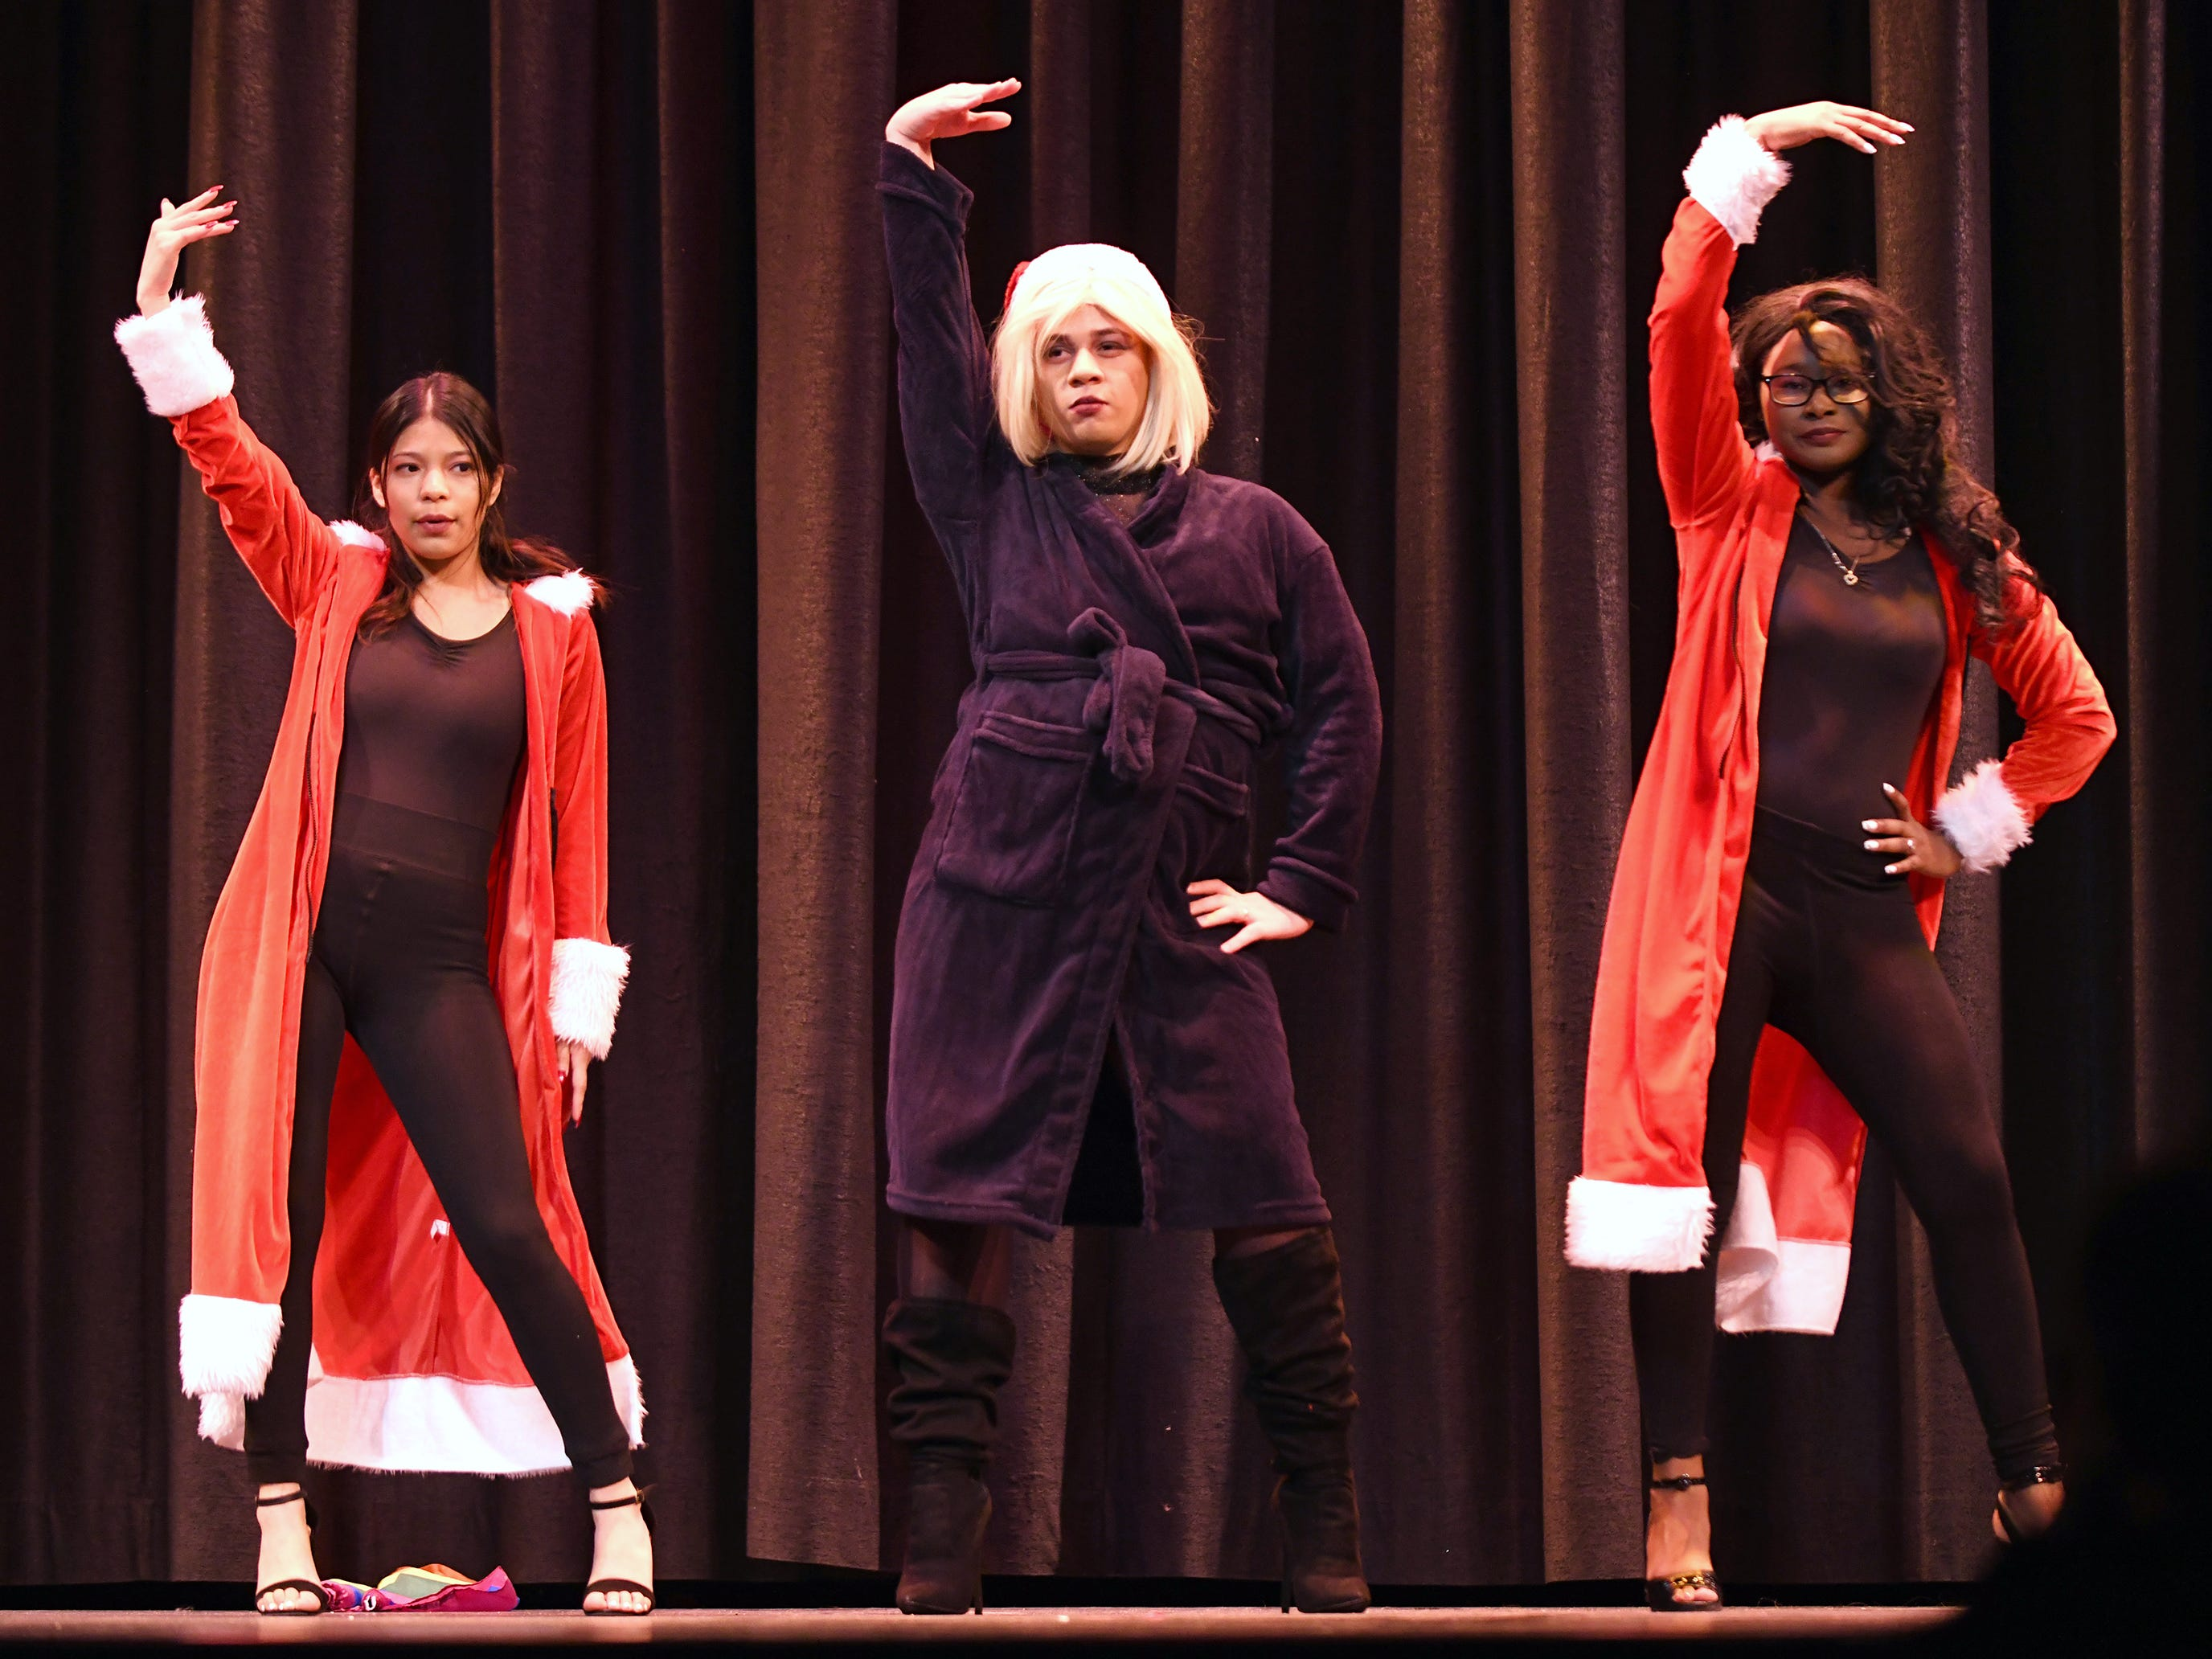 Isaac Rodriguez (center) performs during the talent portion of Mr. Vineland 2019 at Vineland High School on Thursday, January 10.